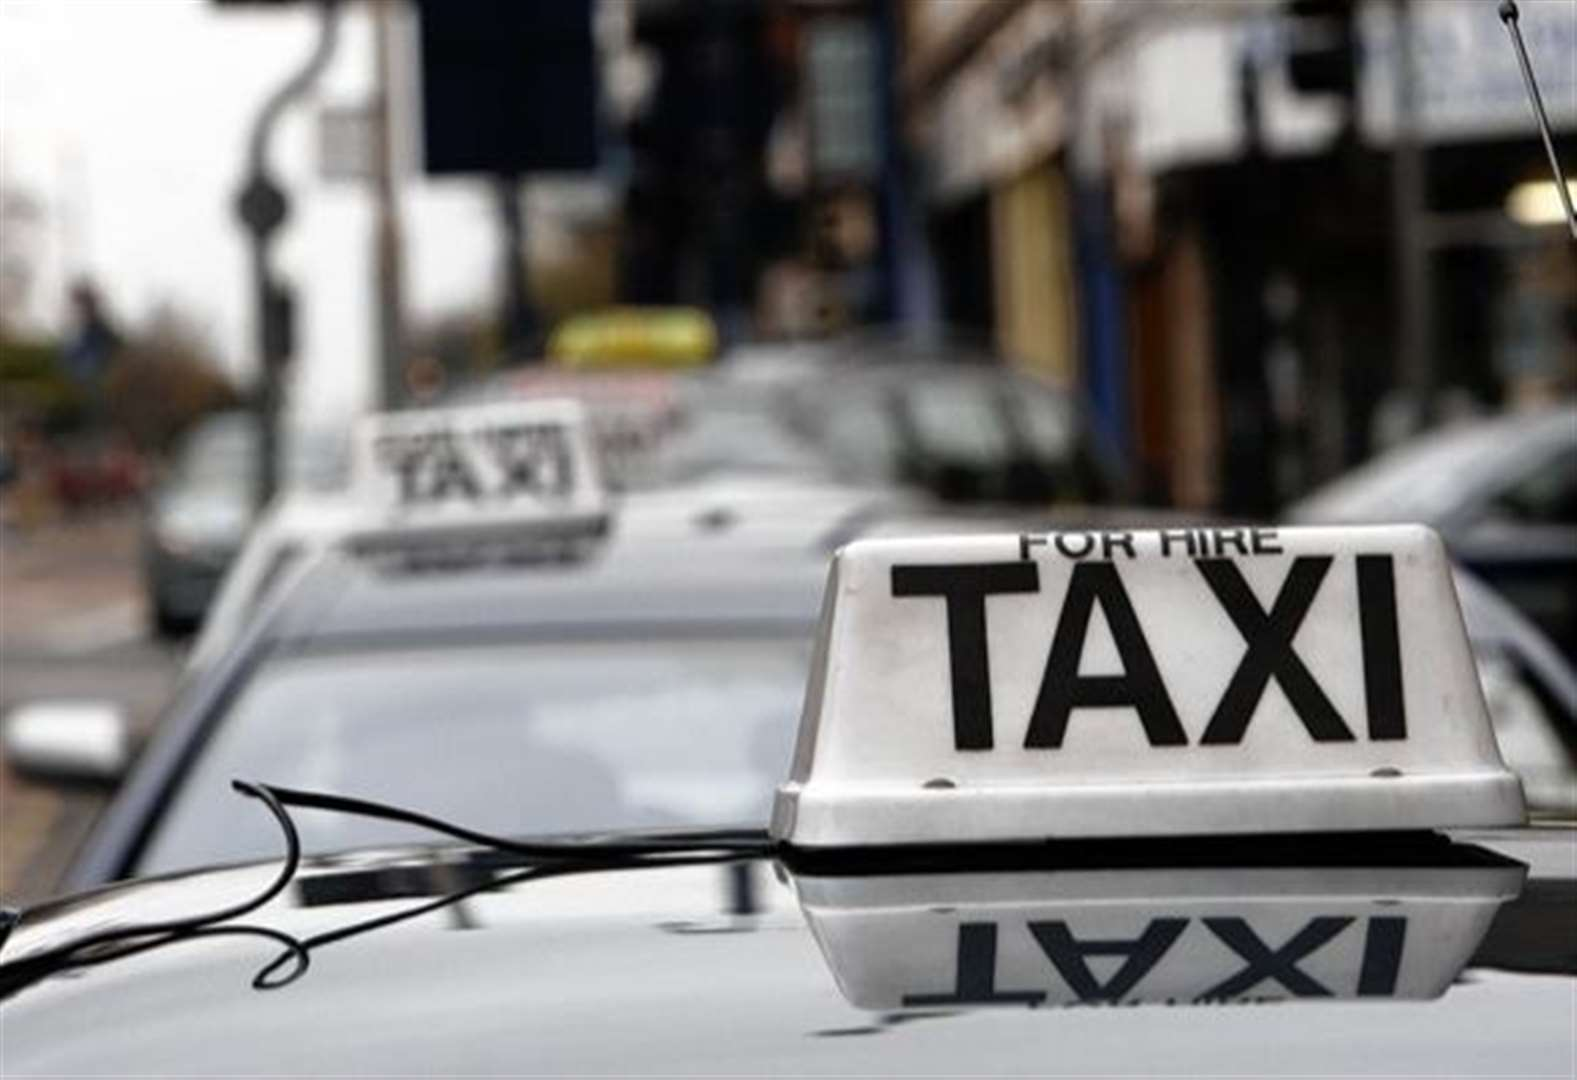 Illegal taxi driver fined £2,000